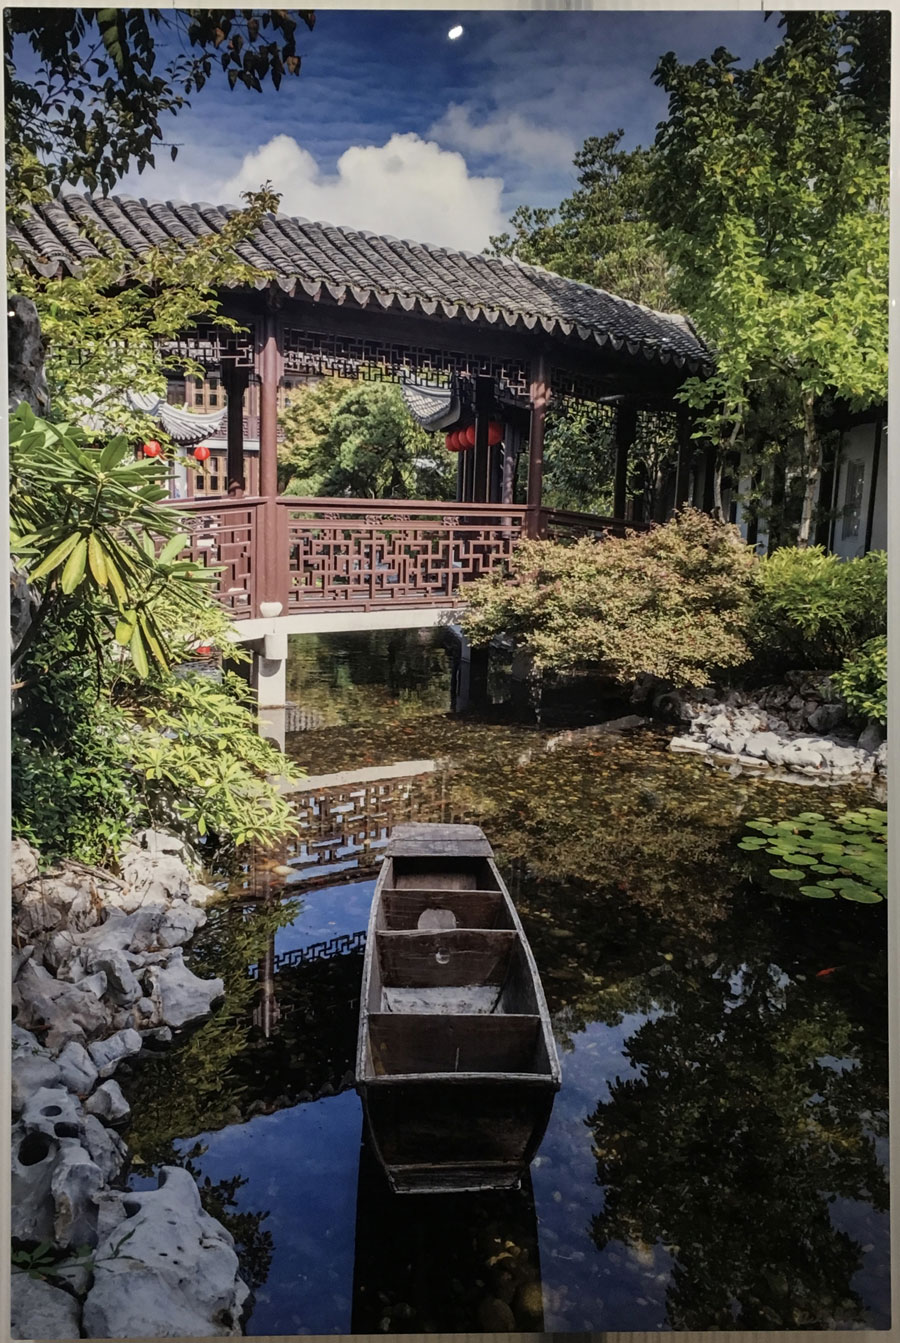 Photograph of Portland Chinese Gardens